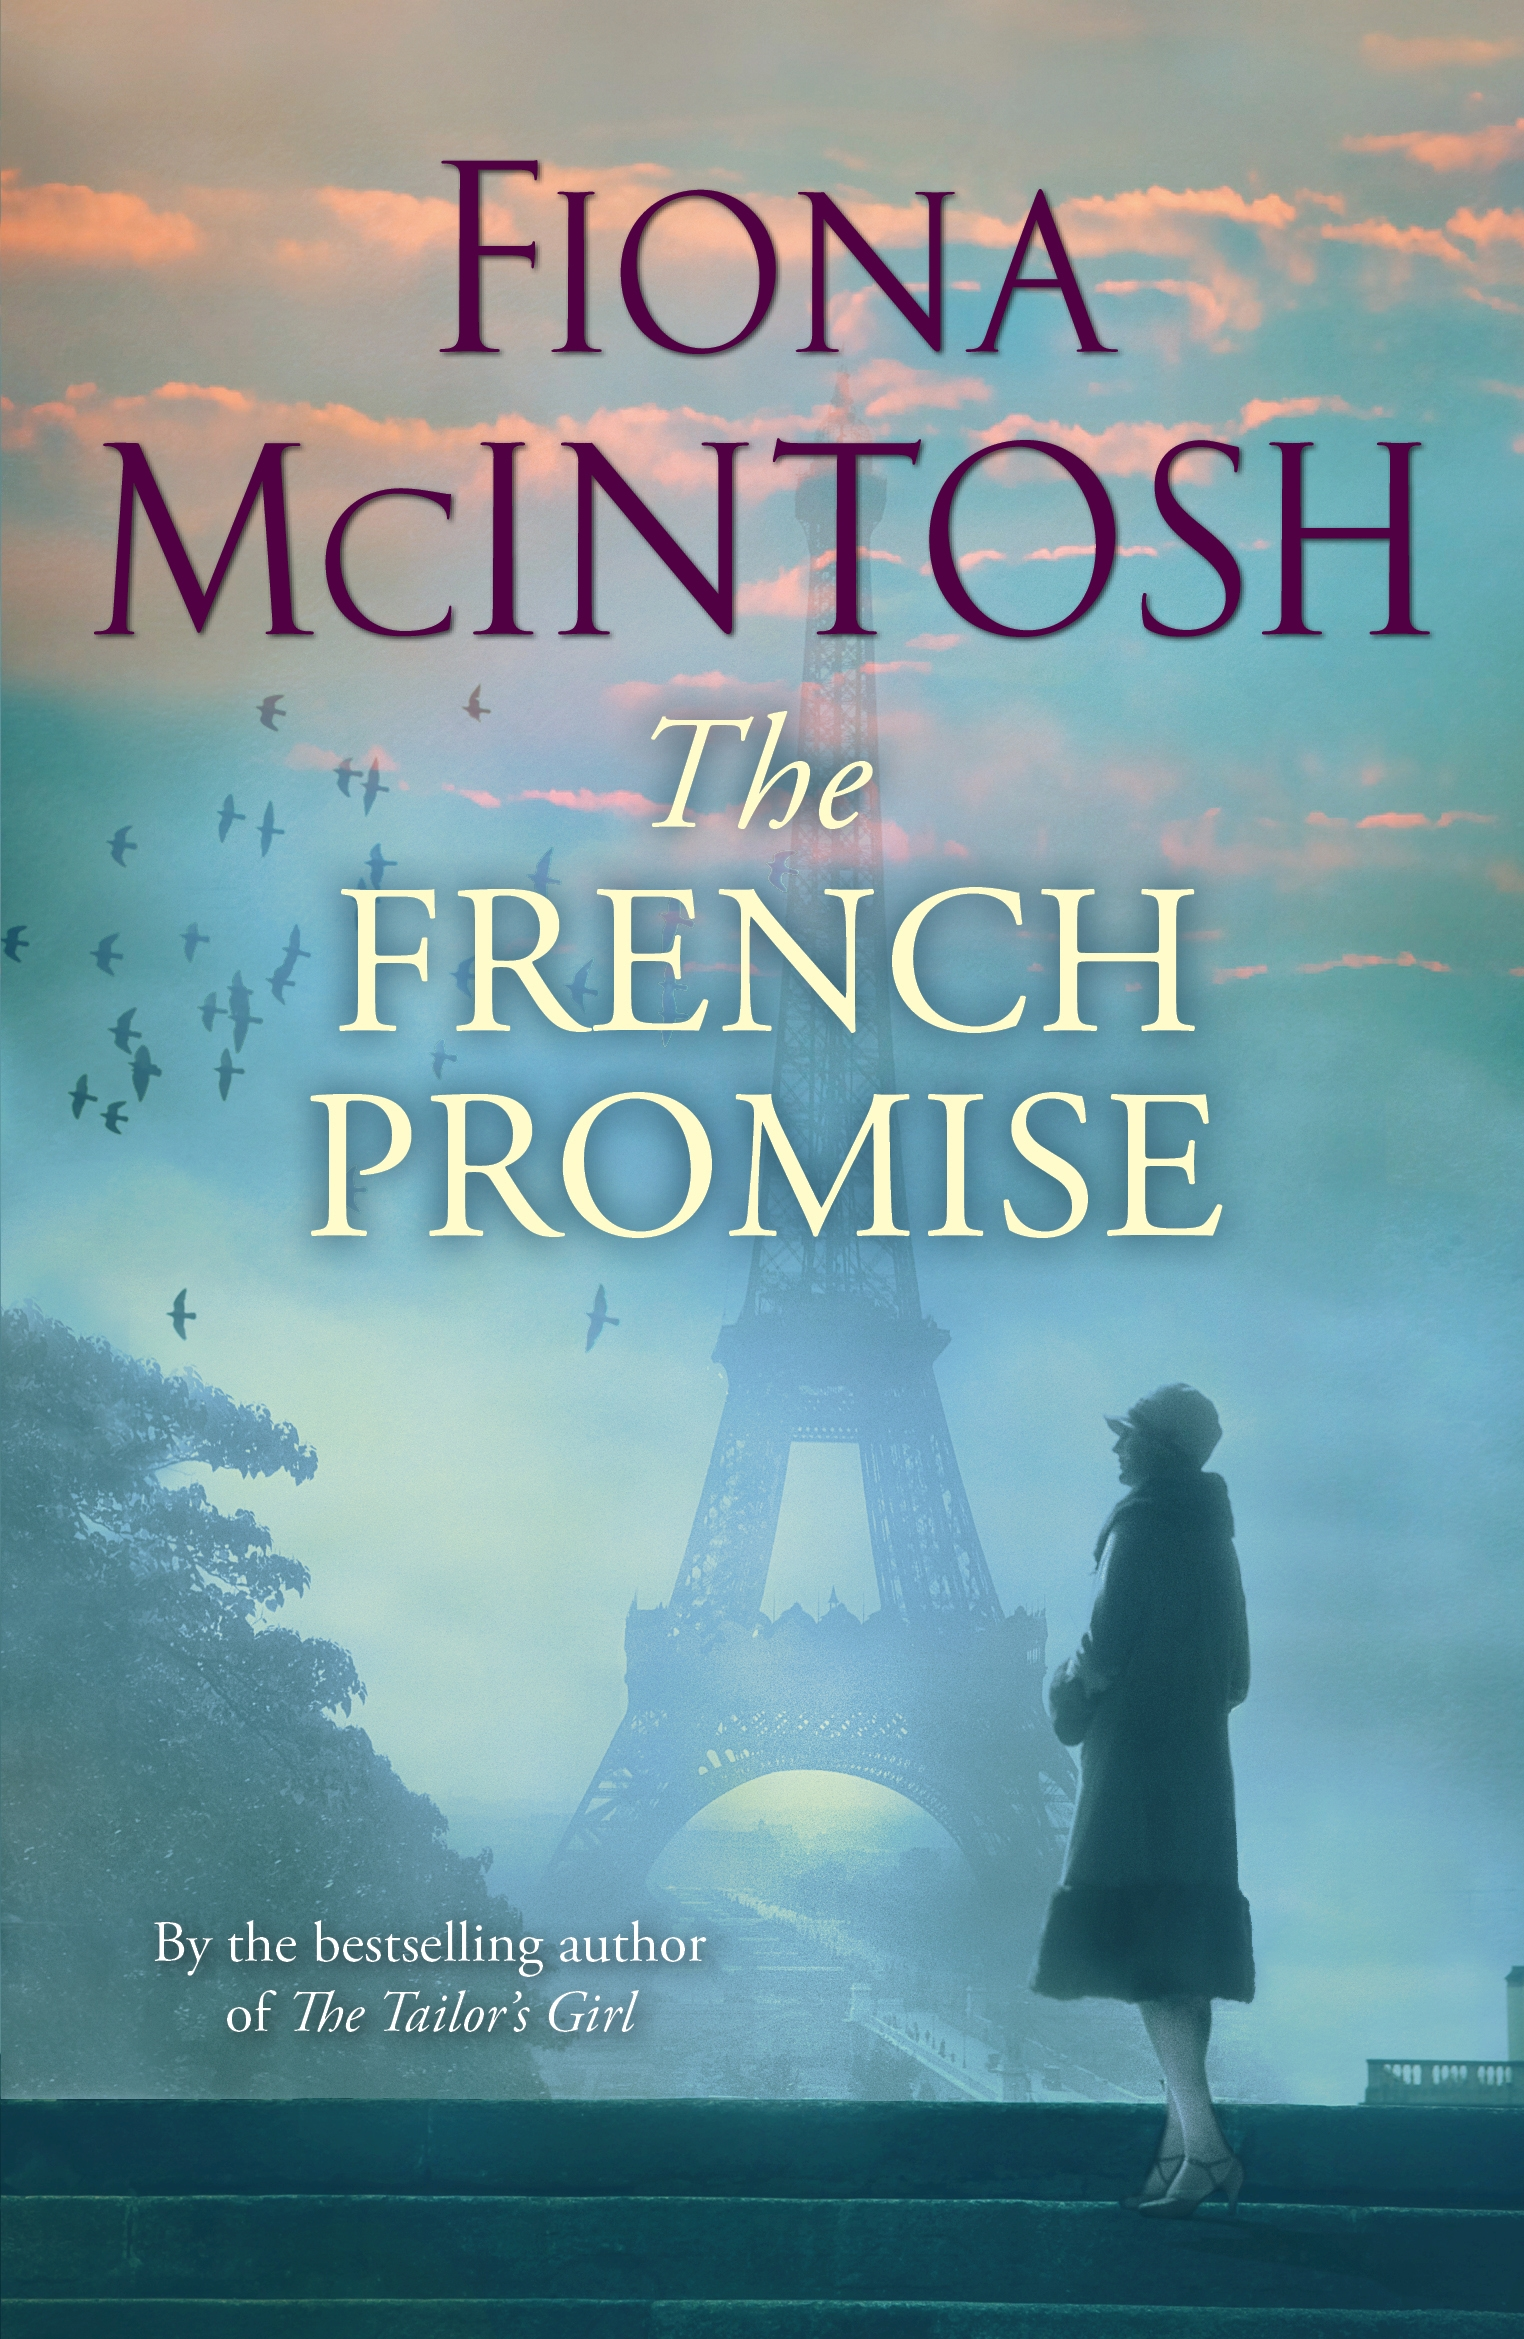 Image result for the french promise by fiona mcintosh